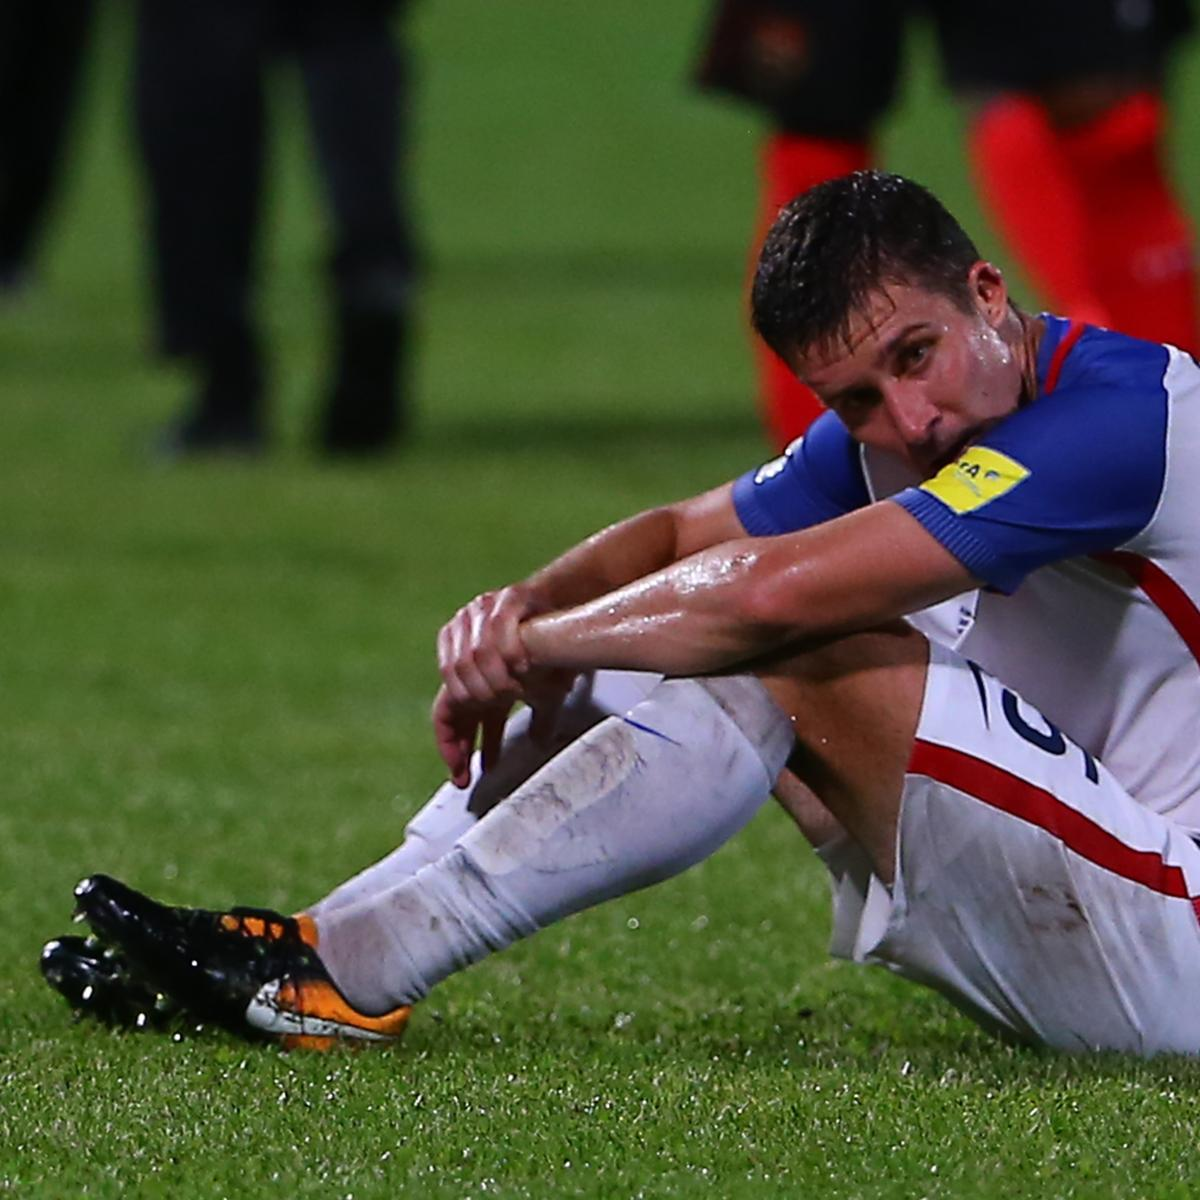 US Men's National Team Fails to Qualify for World Cup for 1st Time Since 1986